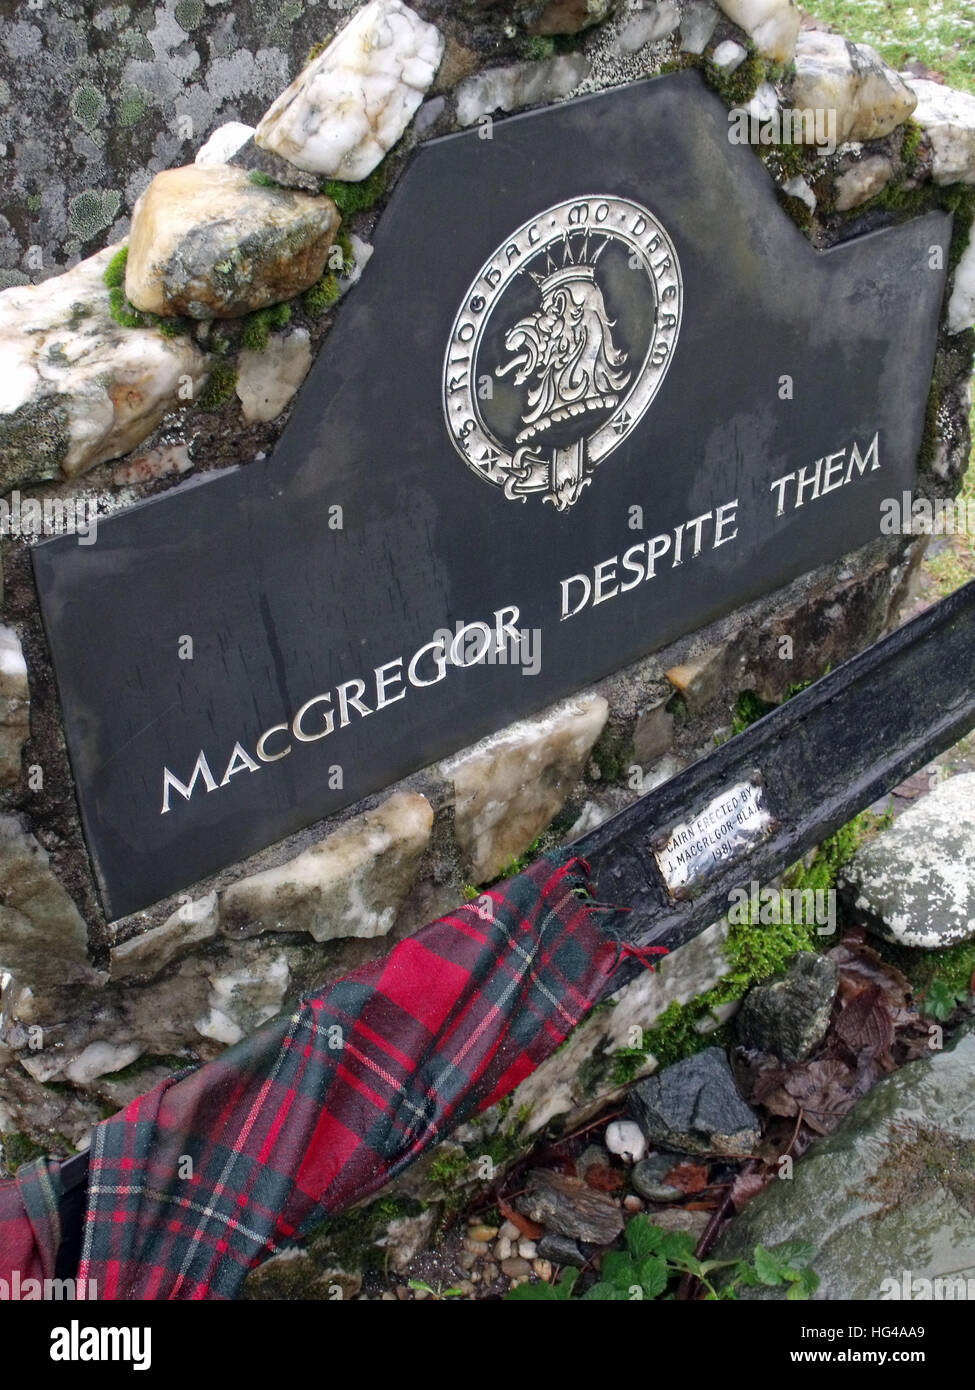 Nationalism,Roy,MacGregor,red,hair,haired,hero,martyr,outlaw,Balquidder,Inverlochlarig,Beg,graveyard,burial,buried,tomb,Robert,MacGregor,Despite,Them,tarten,tartan,crest,Scottish Nationalism,Rob Roy,red hair,Scottish Outlaw,MacGregor Despite Them,GoTonySmith,@HotpixUK,Tony,Smith,UK,GB,Great,Britain,United,Kingdom,Scottish,Scots,British,Scotland,problem,with,problem with,issue with,Raibeart,Ruadh,MacGriogair,tourist,tour,tourism,attraction,tourist attraction,travel,famous,grave,yard,tombstone,stone,sign,YES,Stirling,Sterlingshire,rural,countryside,Scottish,SNP,independance party,independence,indyref,referendum,2nd,second,Buy Pictures of,Buy Images Of,Images of,Stock Images,Tony Smith,United Kingdom,Great Britain,British Isles,Raibeart Ruadh MacGriogair,Robert MacGregor,Scottish Countryside